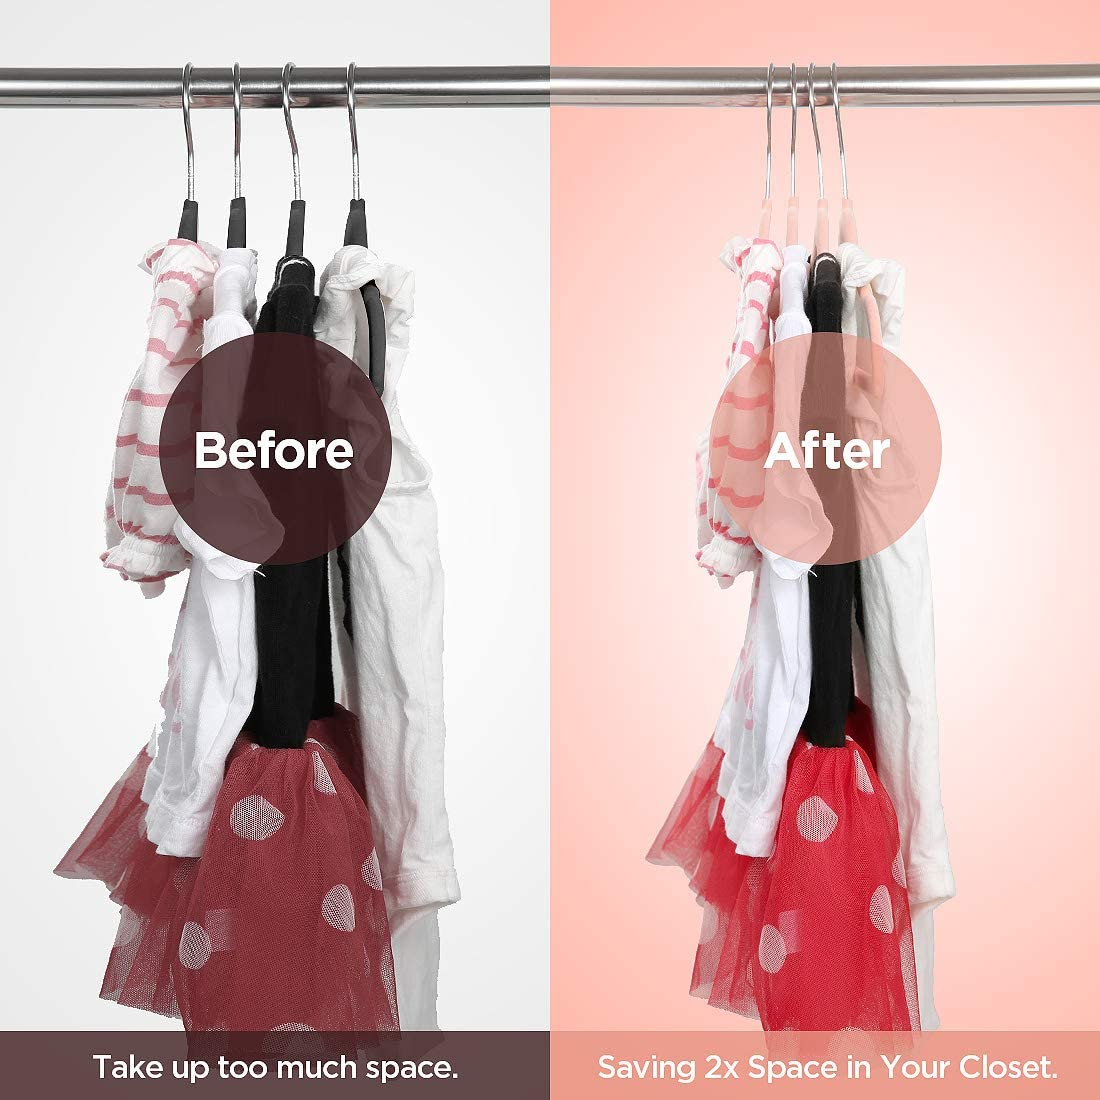 JSLHOME Velvet Hangers with Baby Clothing Dividers,Clothes Hangers,Kids Hangers,30 Pack,Non-Slip Flocking Material Pink Ultra Thin Space Saving,360 Degree Swivel Hook